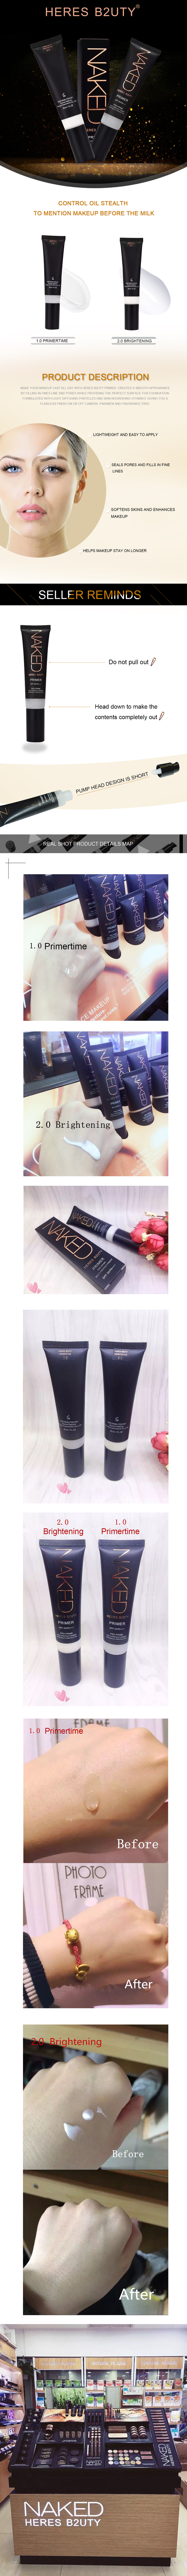 HERES B2UTY  Base Primer Makeup Oil-Control Pores Concealing Whitening Brighten Multi-Protection Smooth Face 30ml